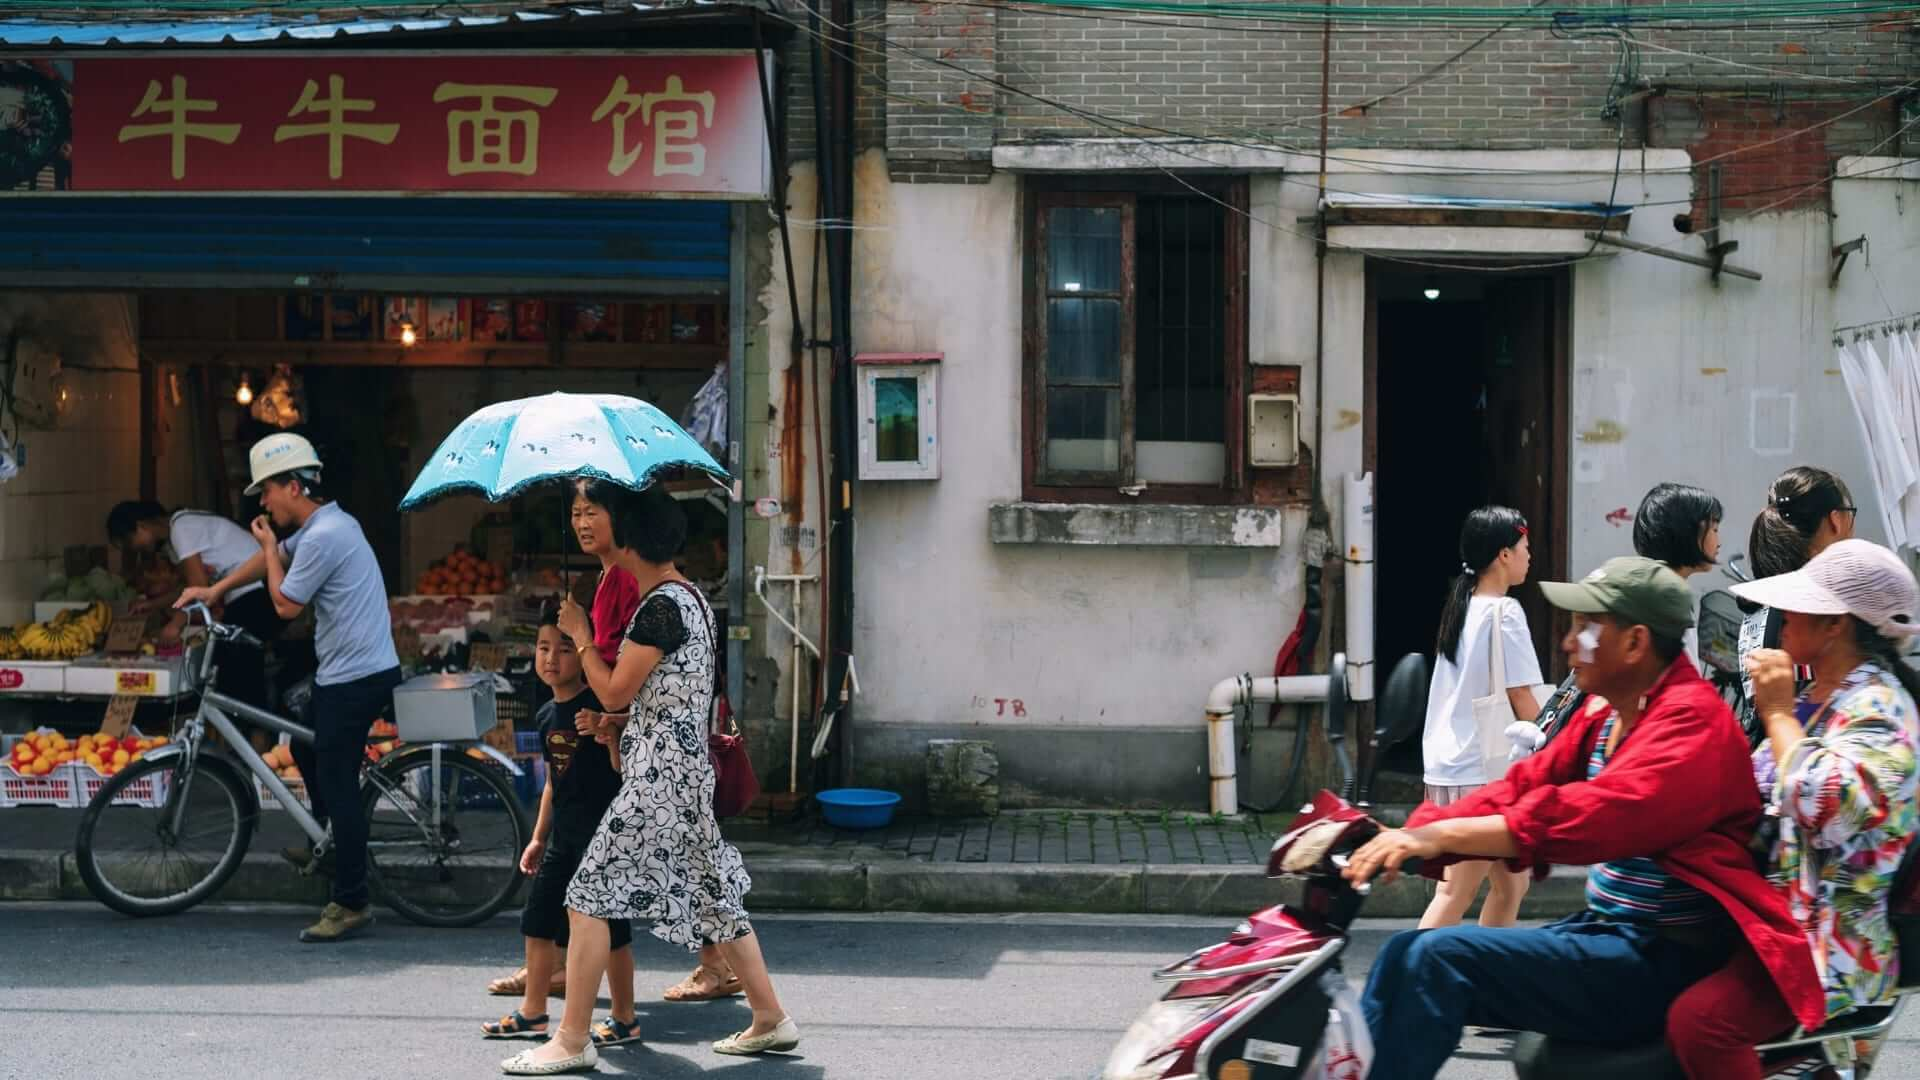 People are walking and driving a scooter and a bike on a street with a small Chinese fruit shop in it in Shanghai.